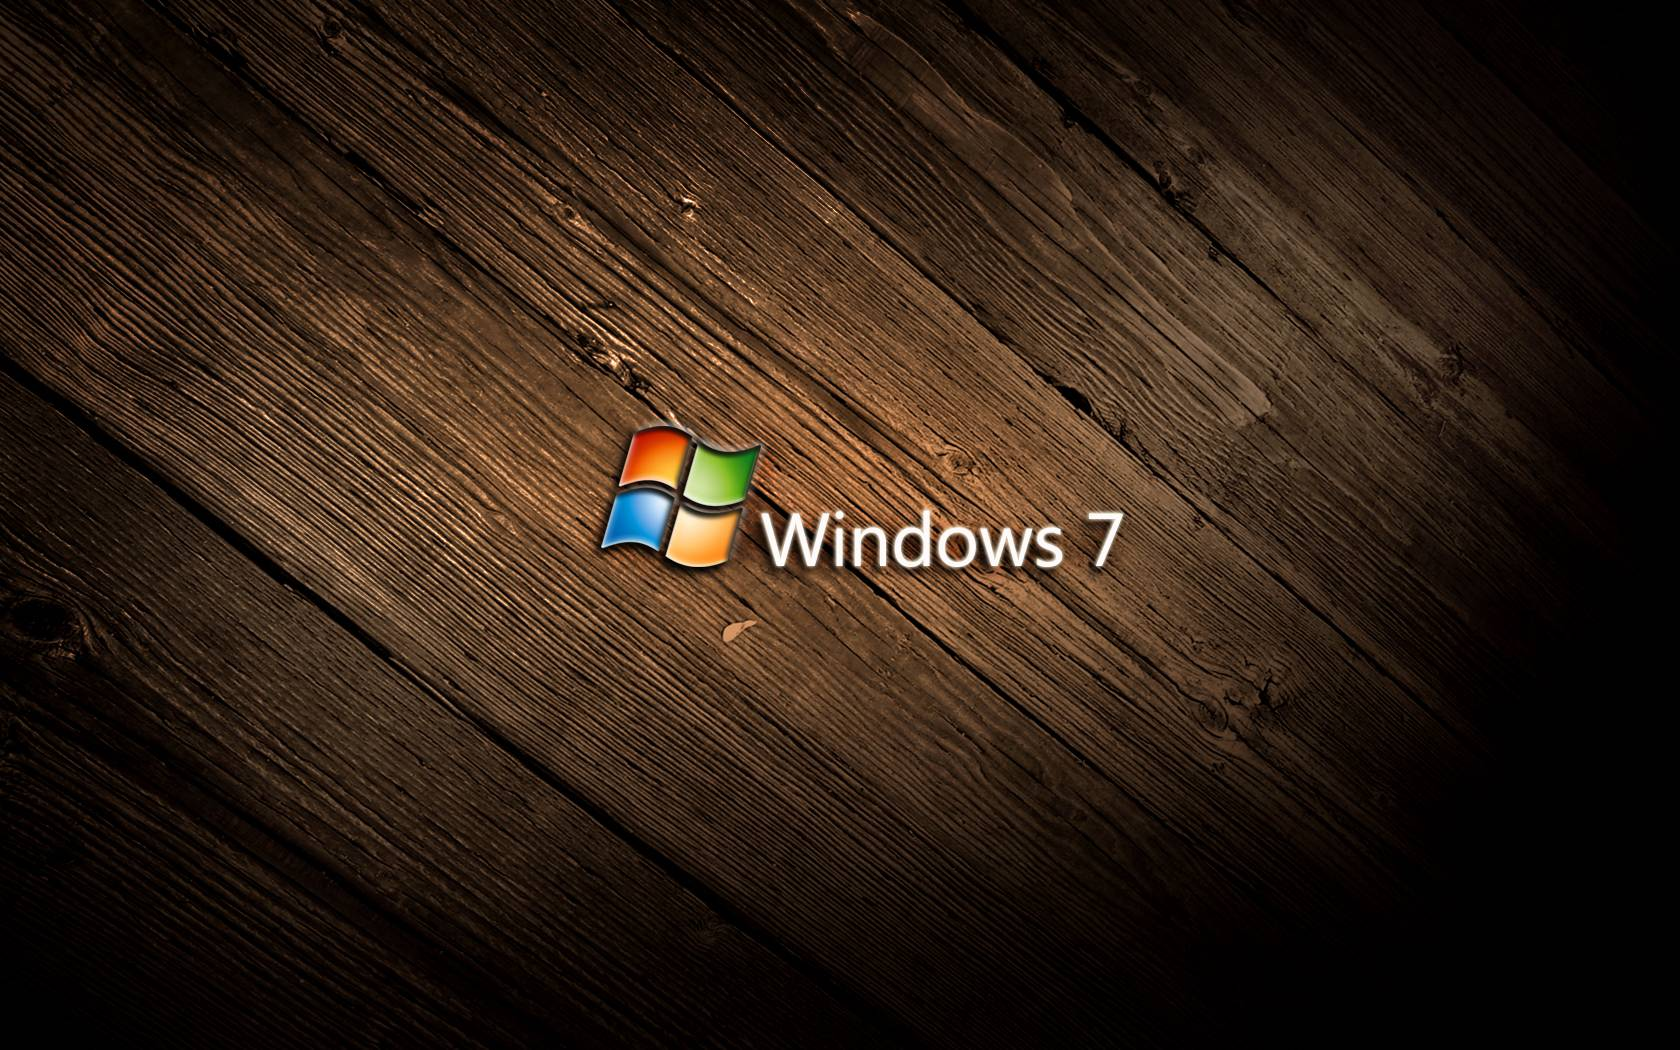 Wallpapers For Windows 7